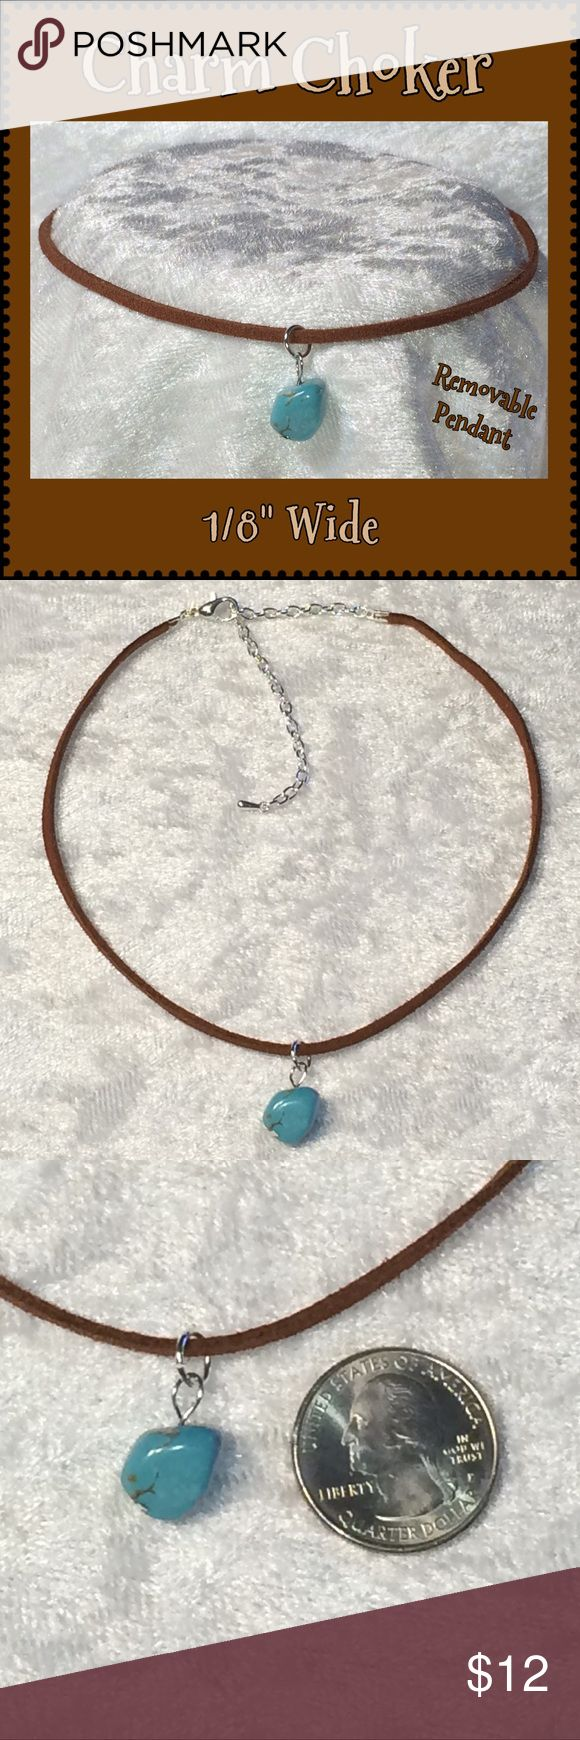 """Chestnut Brown Faux Suede Blue Nugget Charm Choker This chestnut brown vegan faux suede 1/8""""W choker is 12 1/2"""" long w/ 3 1/2"""" silver-plated extender & removable turquoise-colored resin nugget charm pendant. Handcrafted by me.   Can be made longer or shorter. 35 faux suede colors available. For different color/charm see chart listings & ask for custom order.  Jewelry items priced firm as single purchase due to material cost & PM fees.   Bundle special on guitar pick/choker/charm jewelry…"""